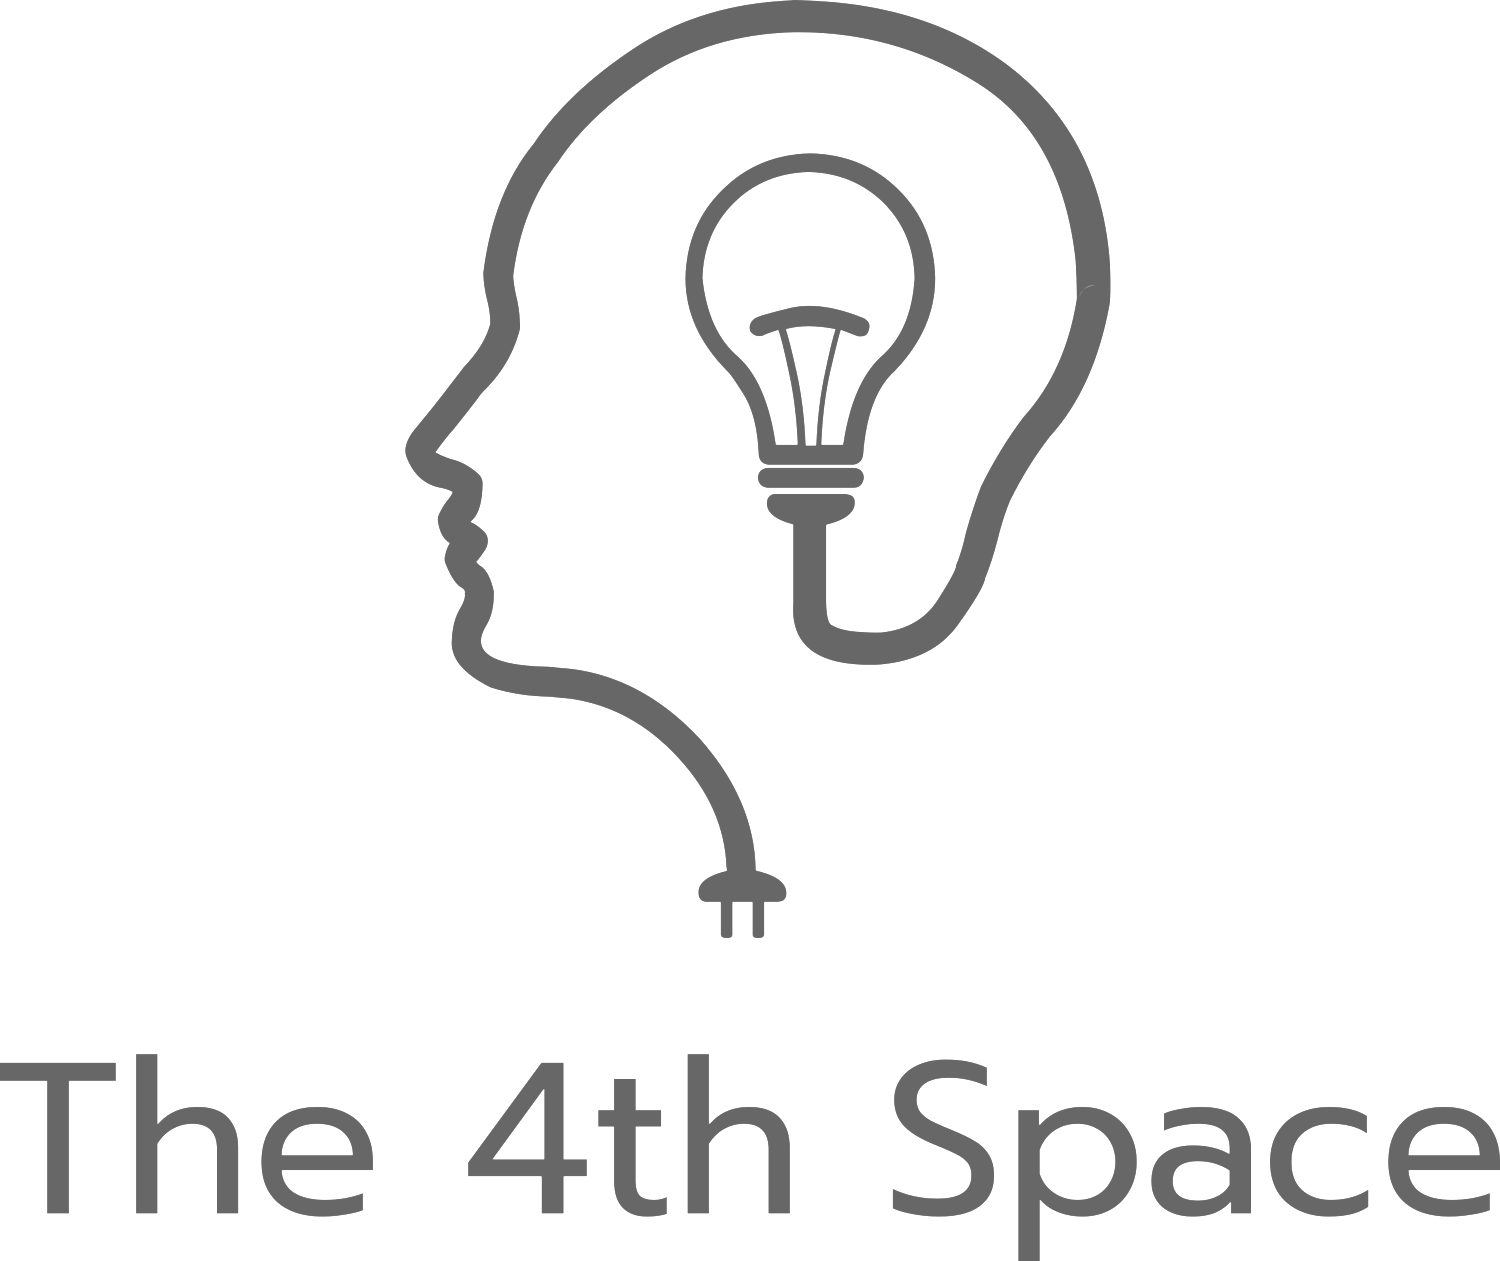 The 4th Space